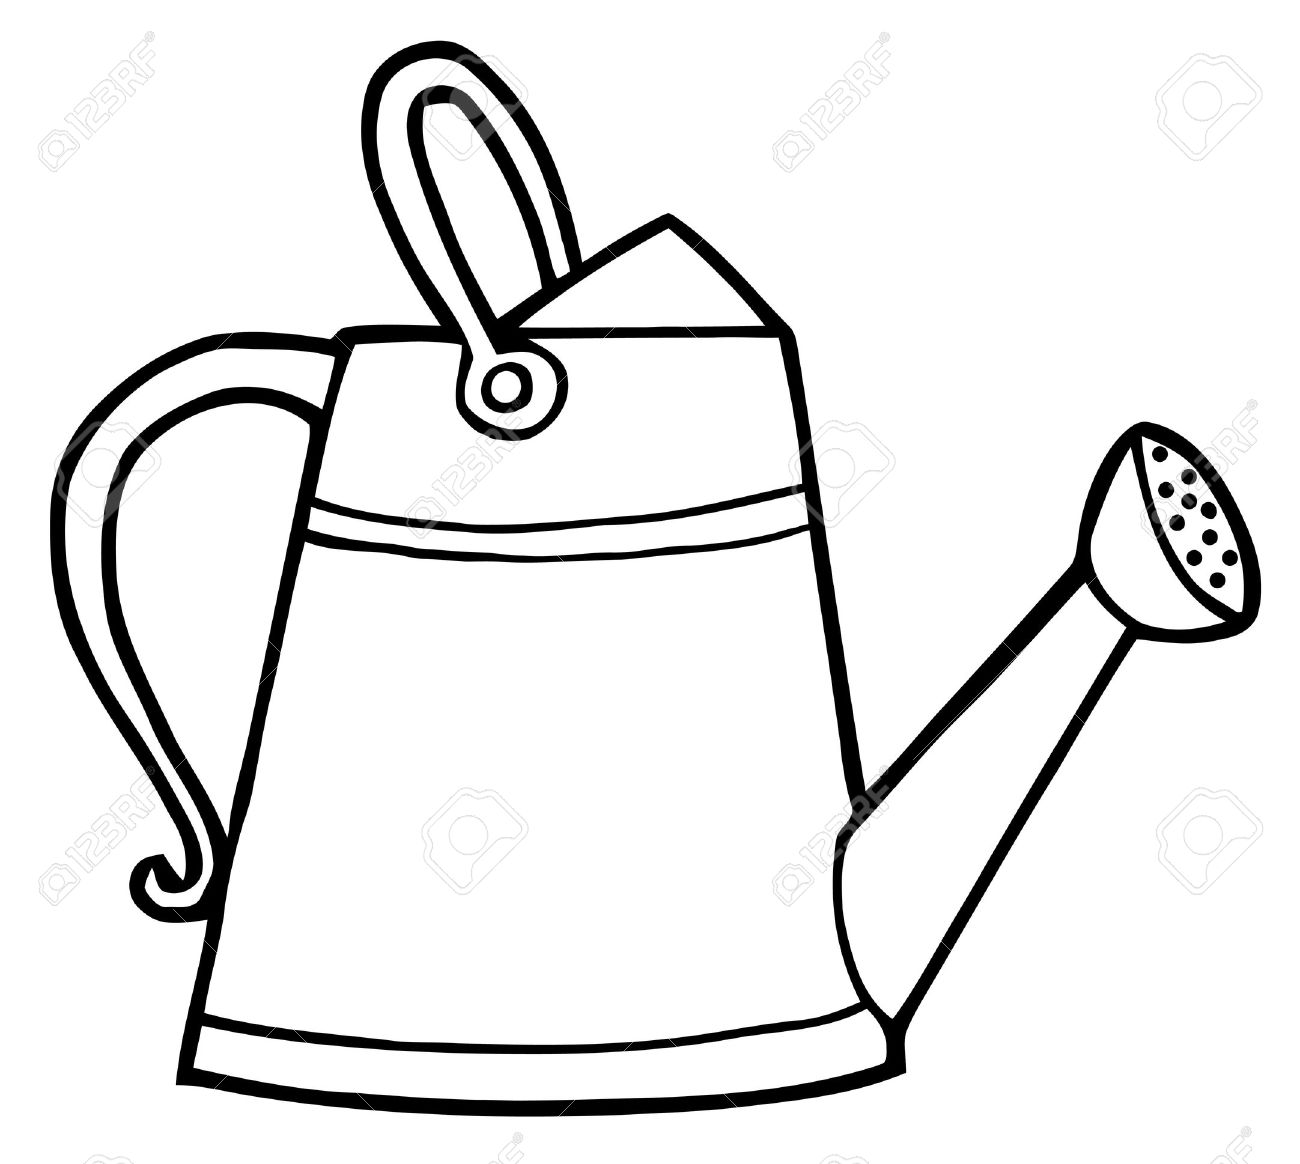 Uncategorized Watering Can Coloring Page coloring page outline of a gardening watering can royalty free stock vector 7849224